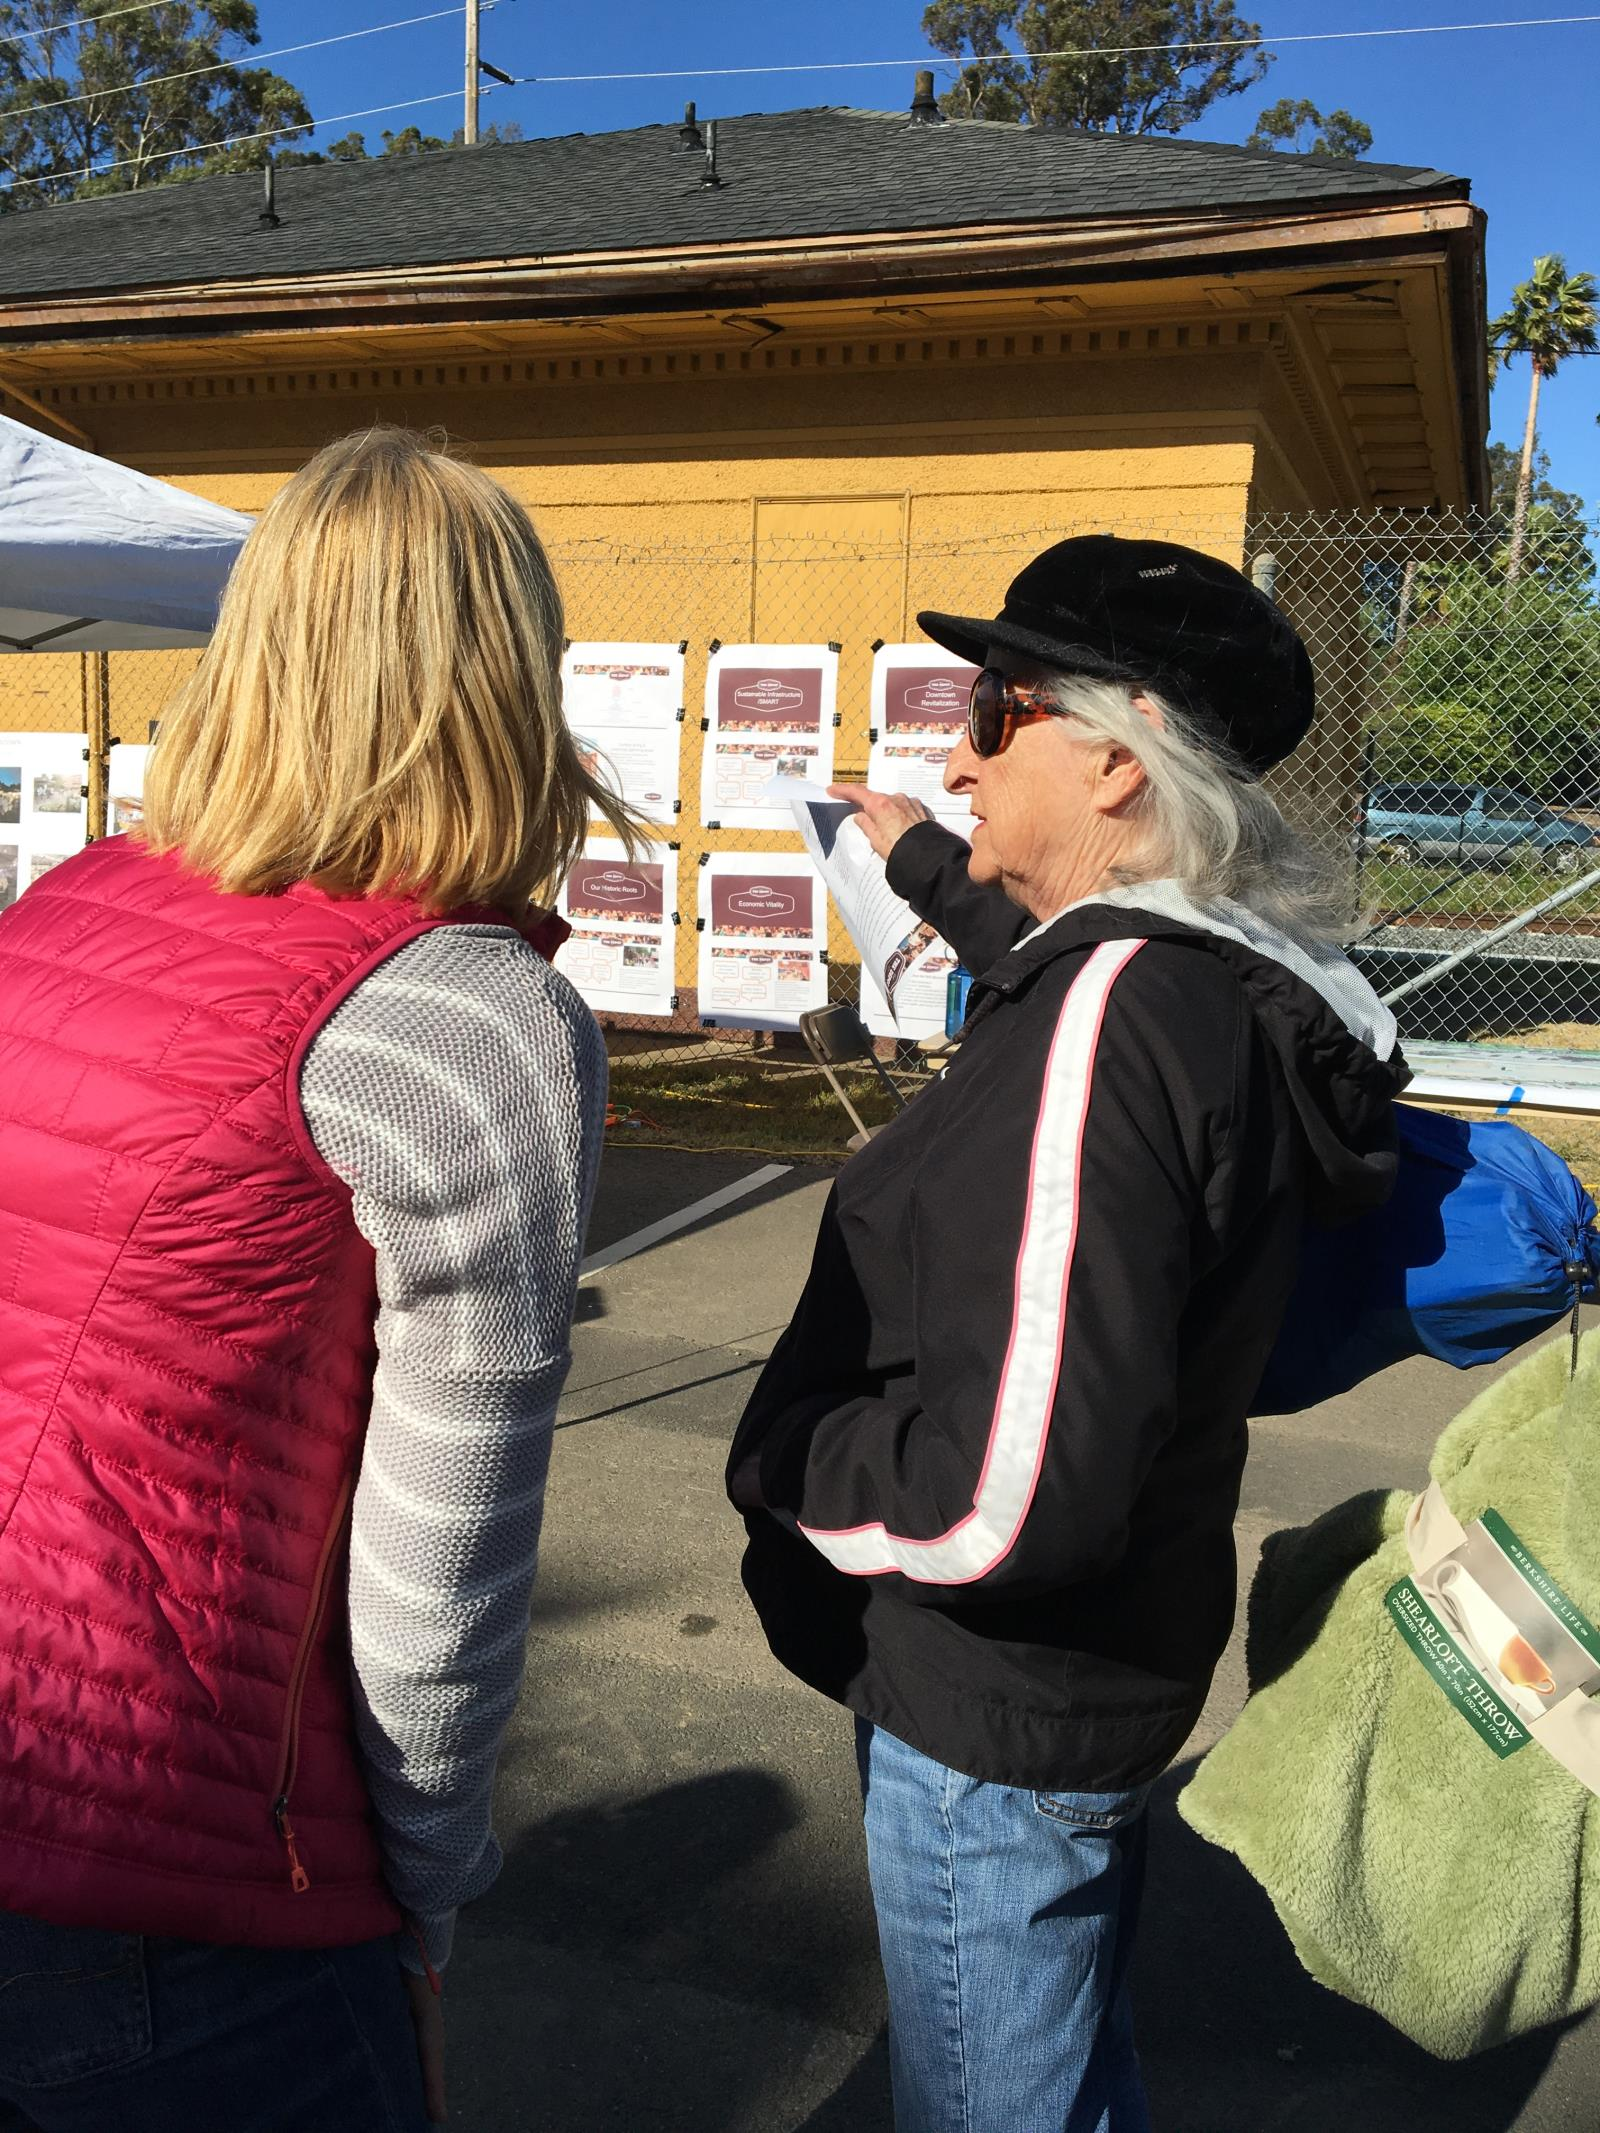 Community members reviewing ideas at Depot site